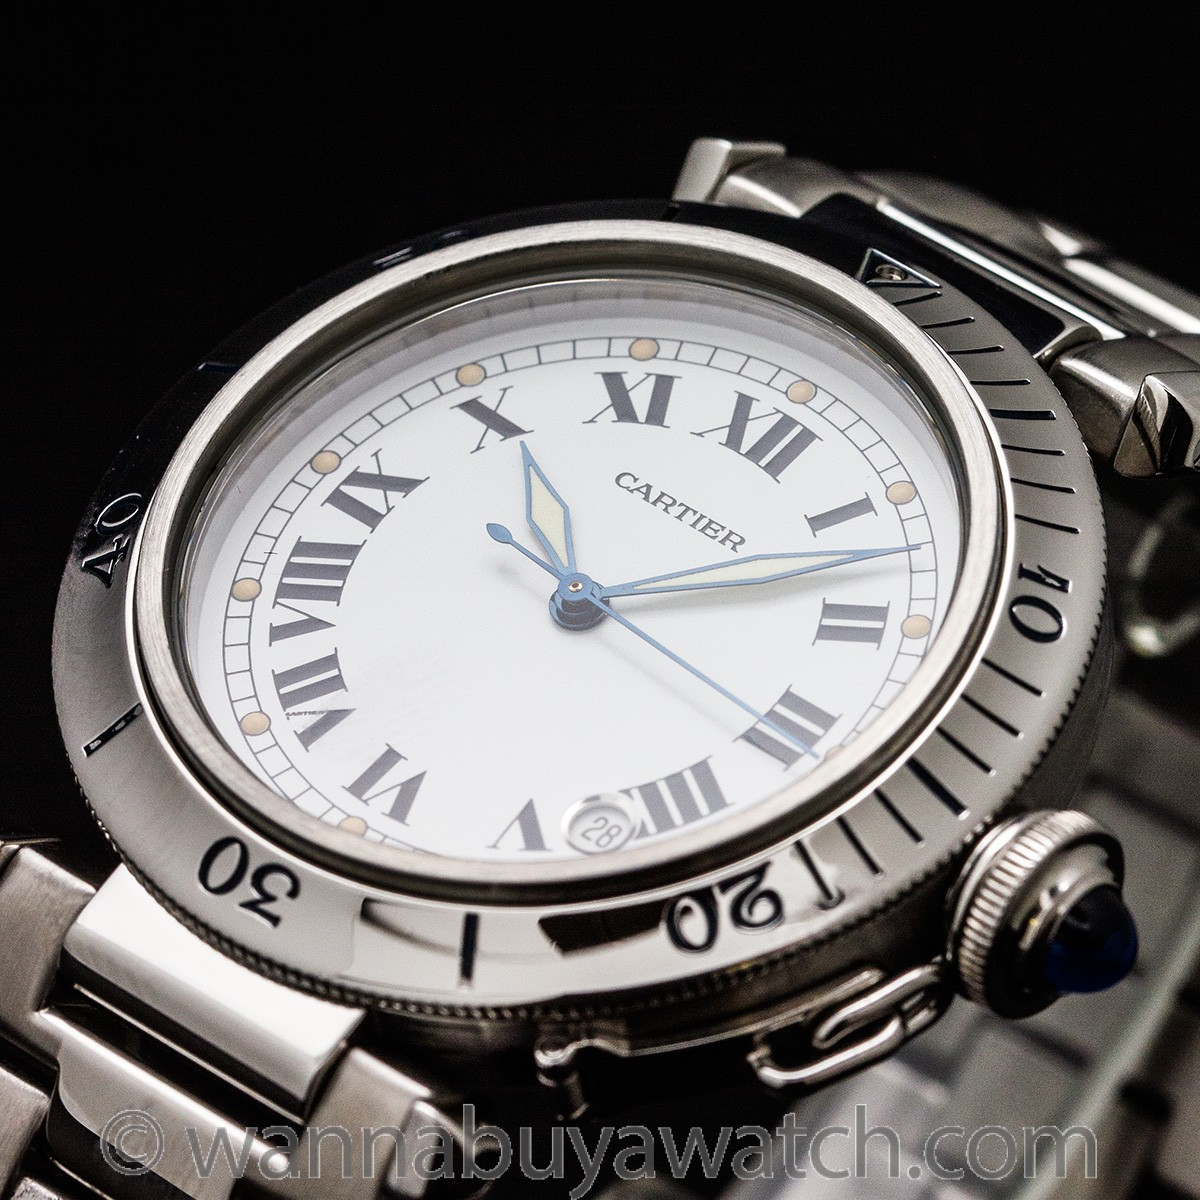 Cartier Pasha Stainless Steel 38mm circa 1990's